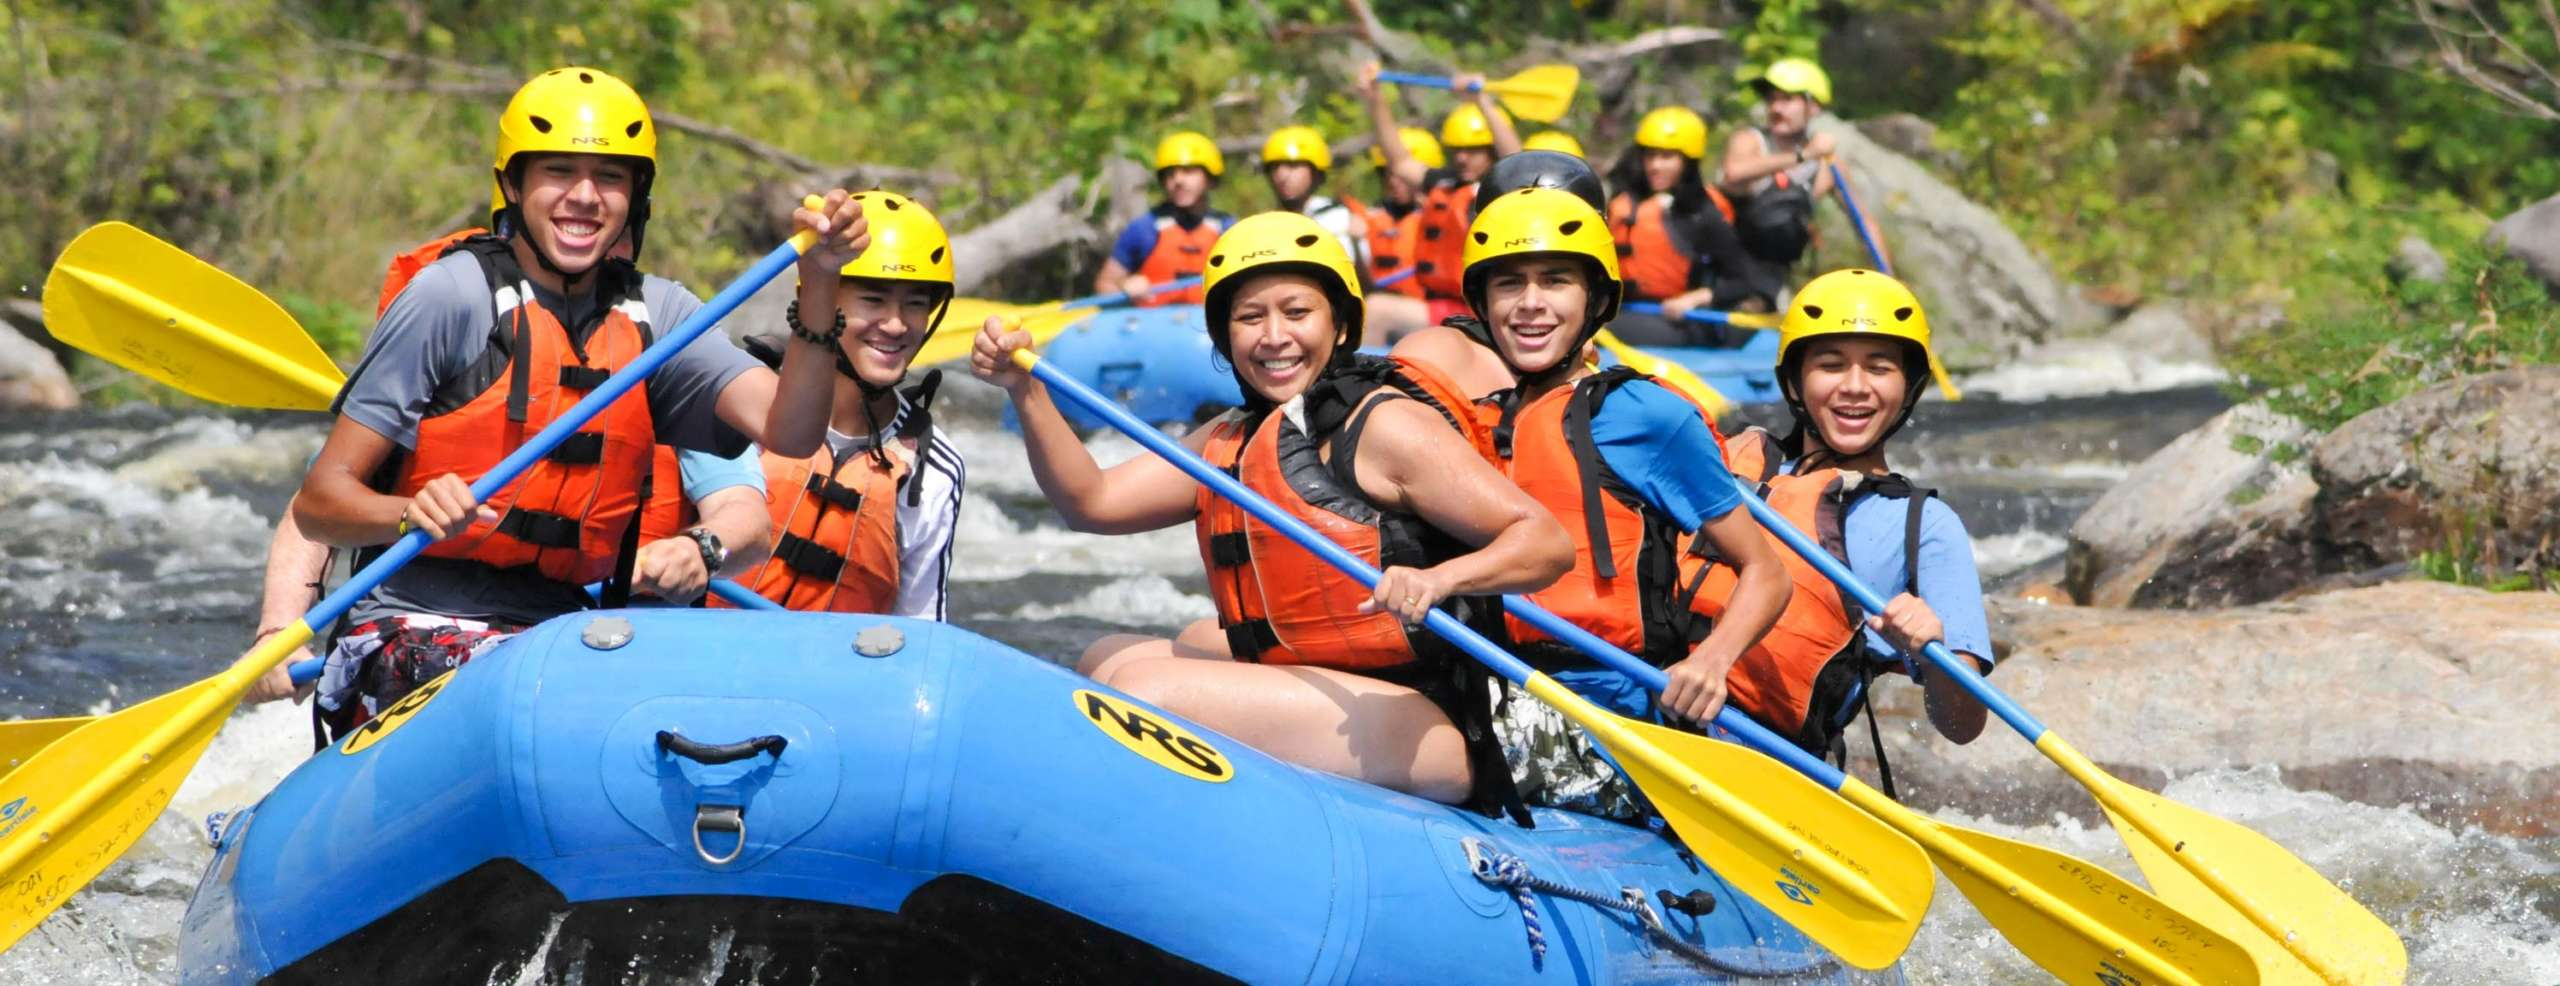 Group of adults rafting down rapids